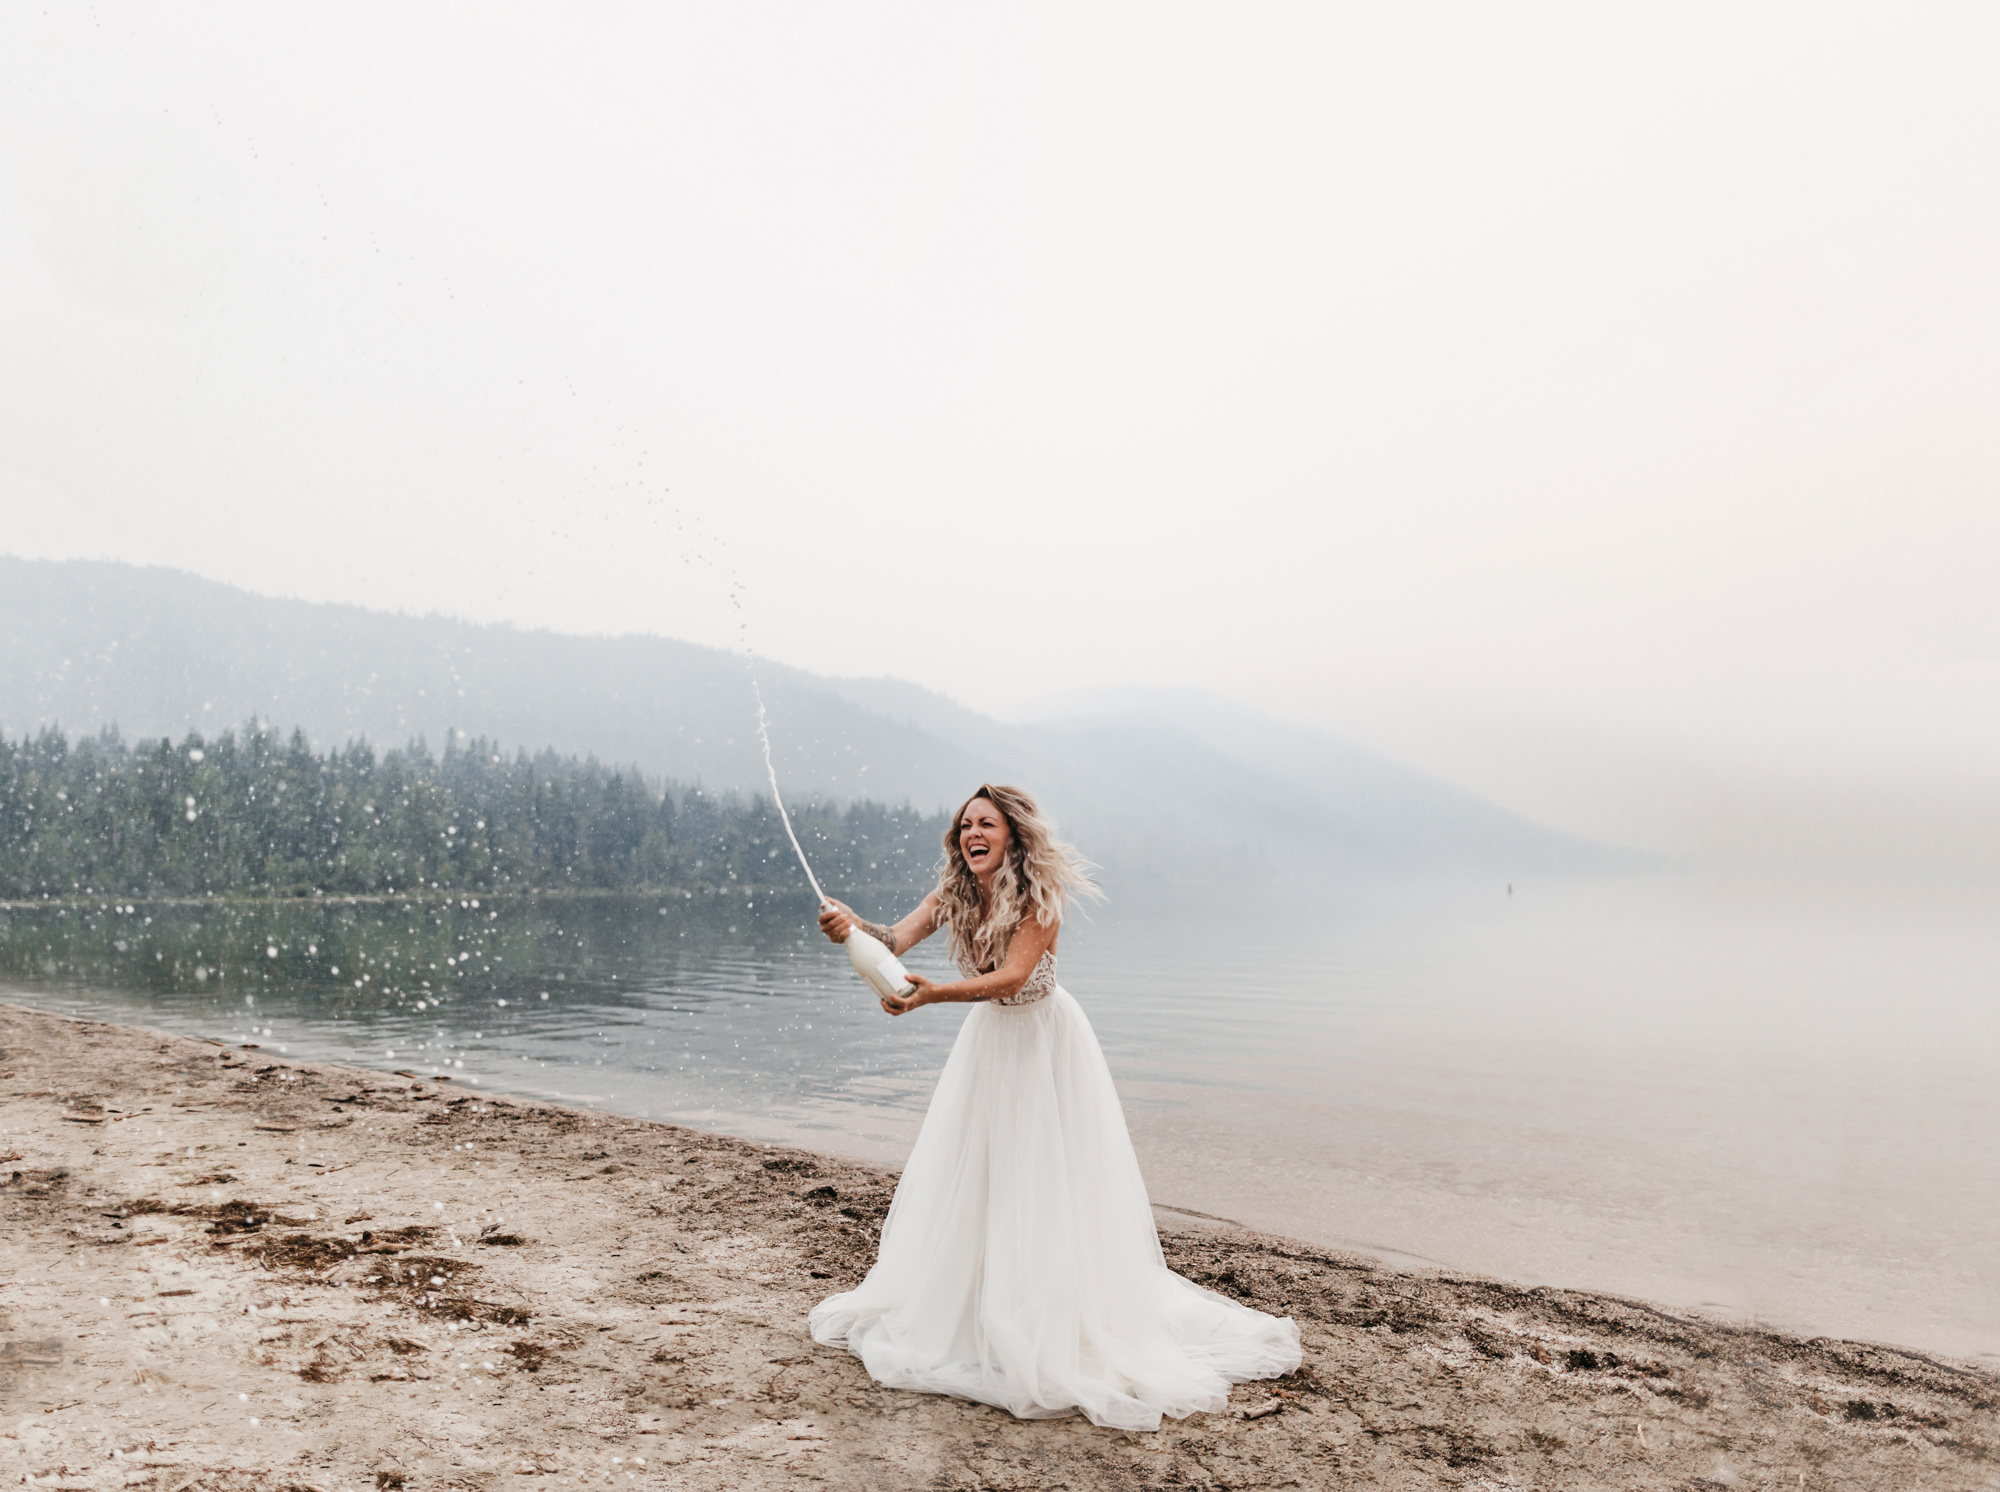 athena-and-camron-sara-truvelle-bridal-wenatchee-elopement-intimate-31-champagne-pop-bride.jpg